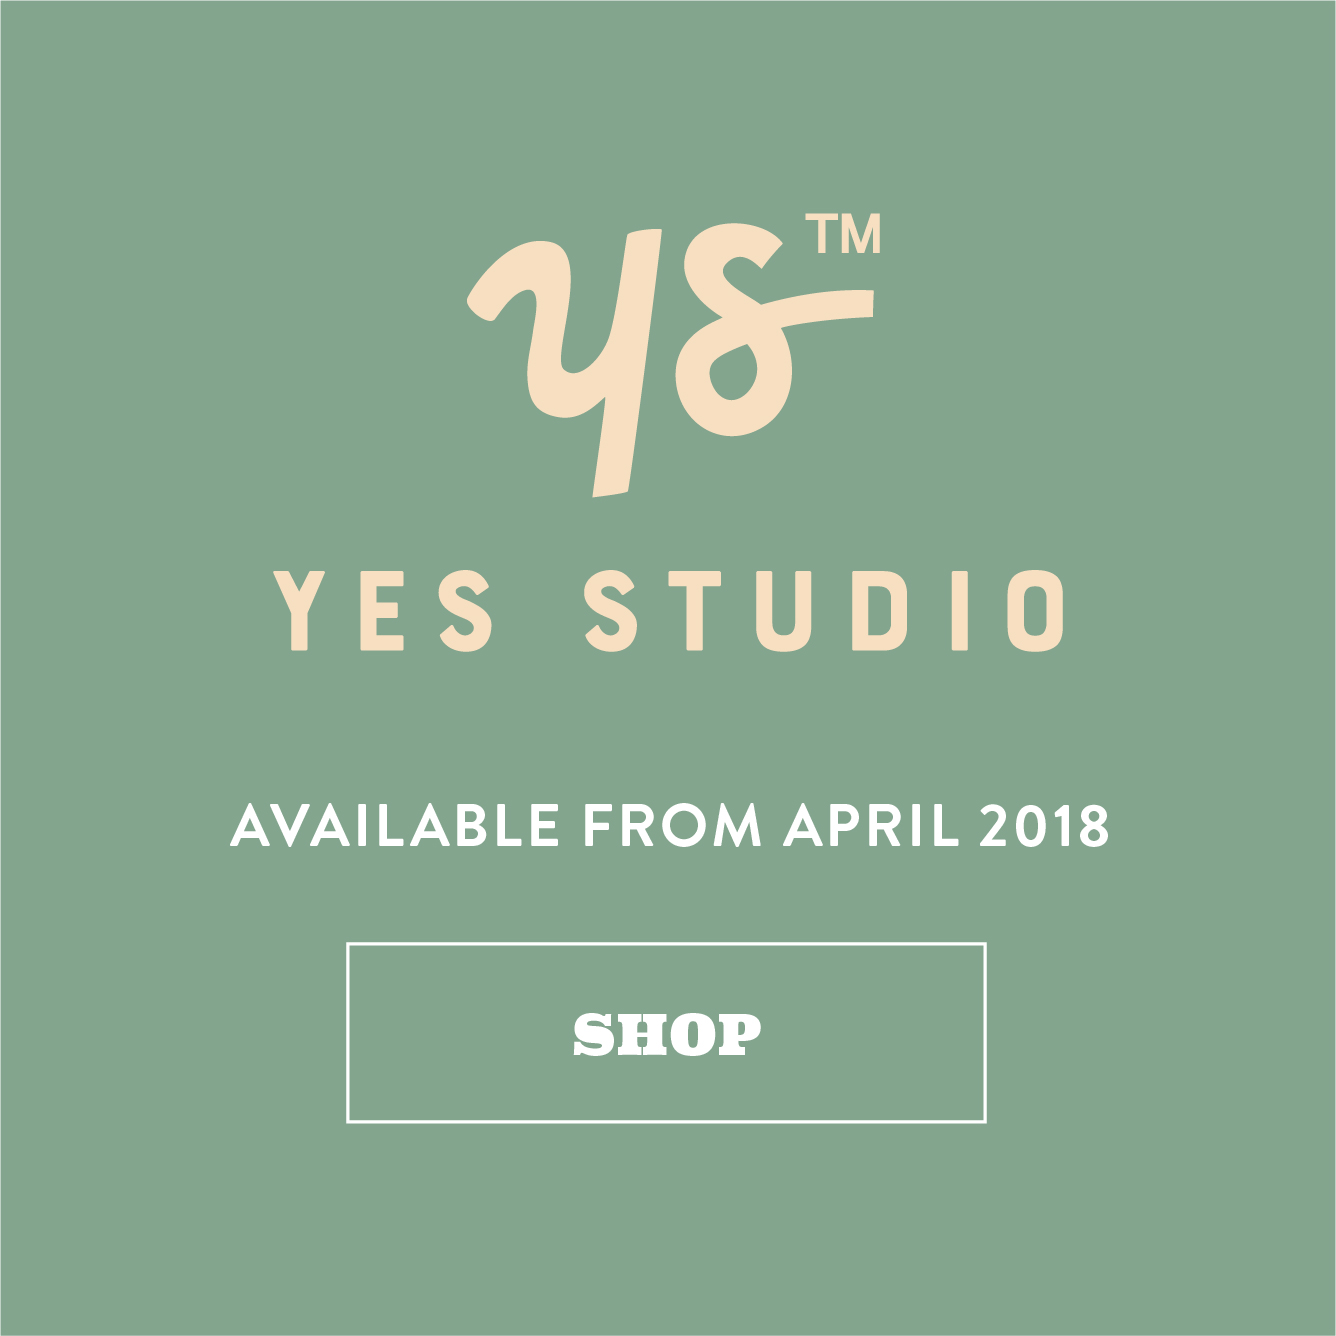 Homapge Tile Yes Studio Logo Tile